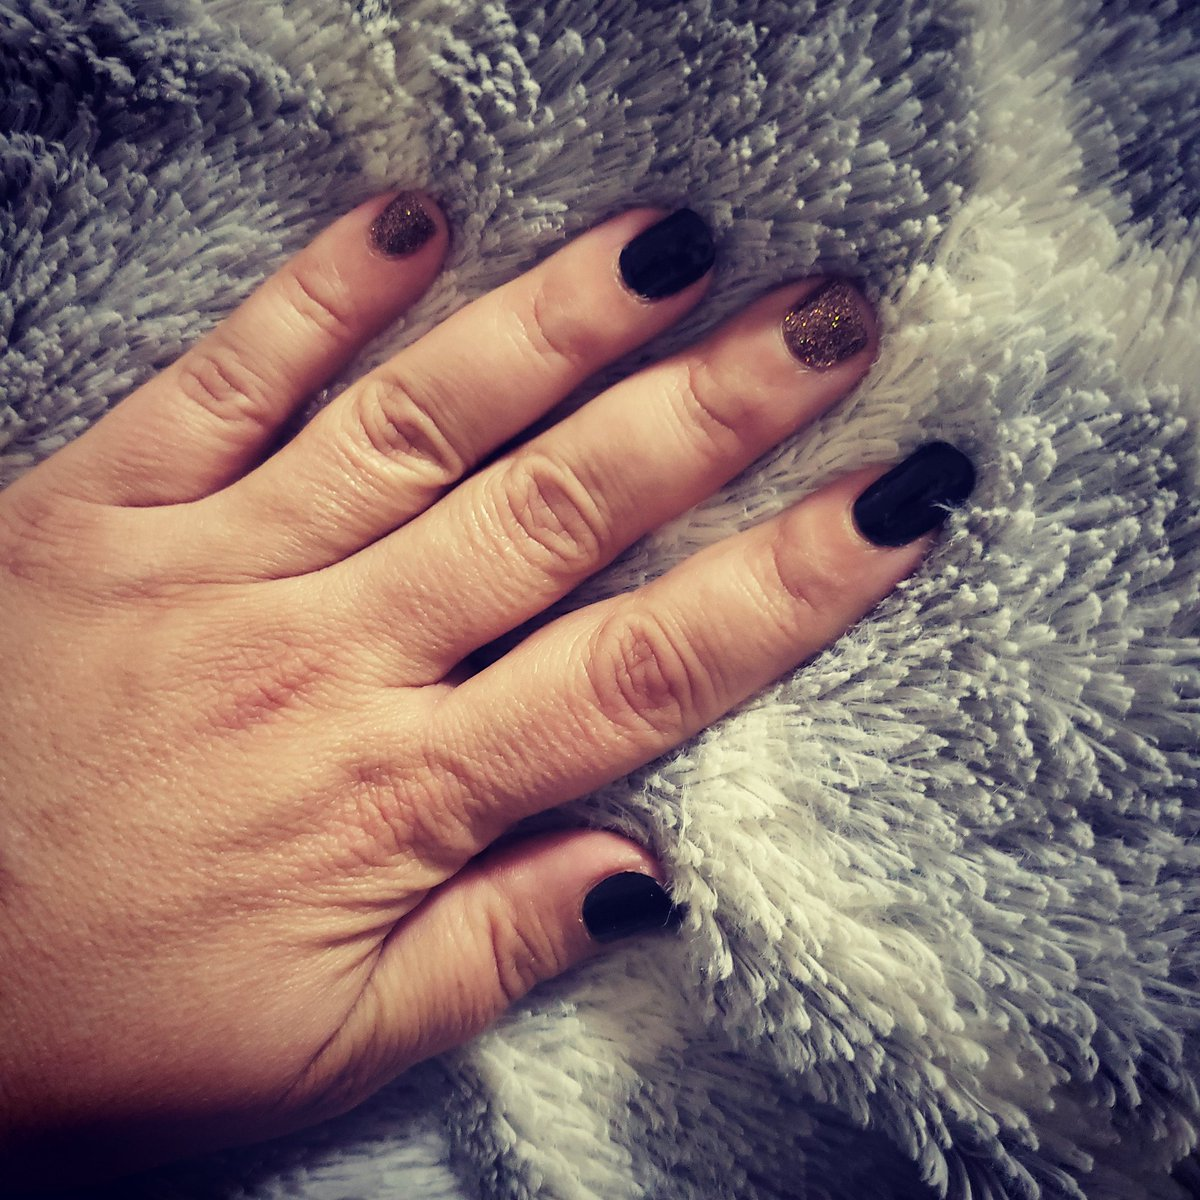 Day 2 with my nails!!! #manimonday pic.twitter.com/AIgH6atq5Y